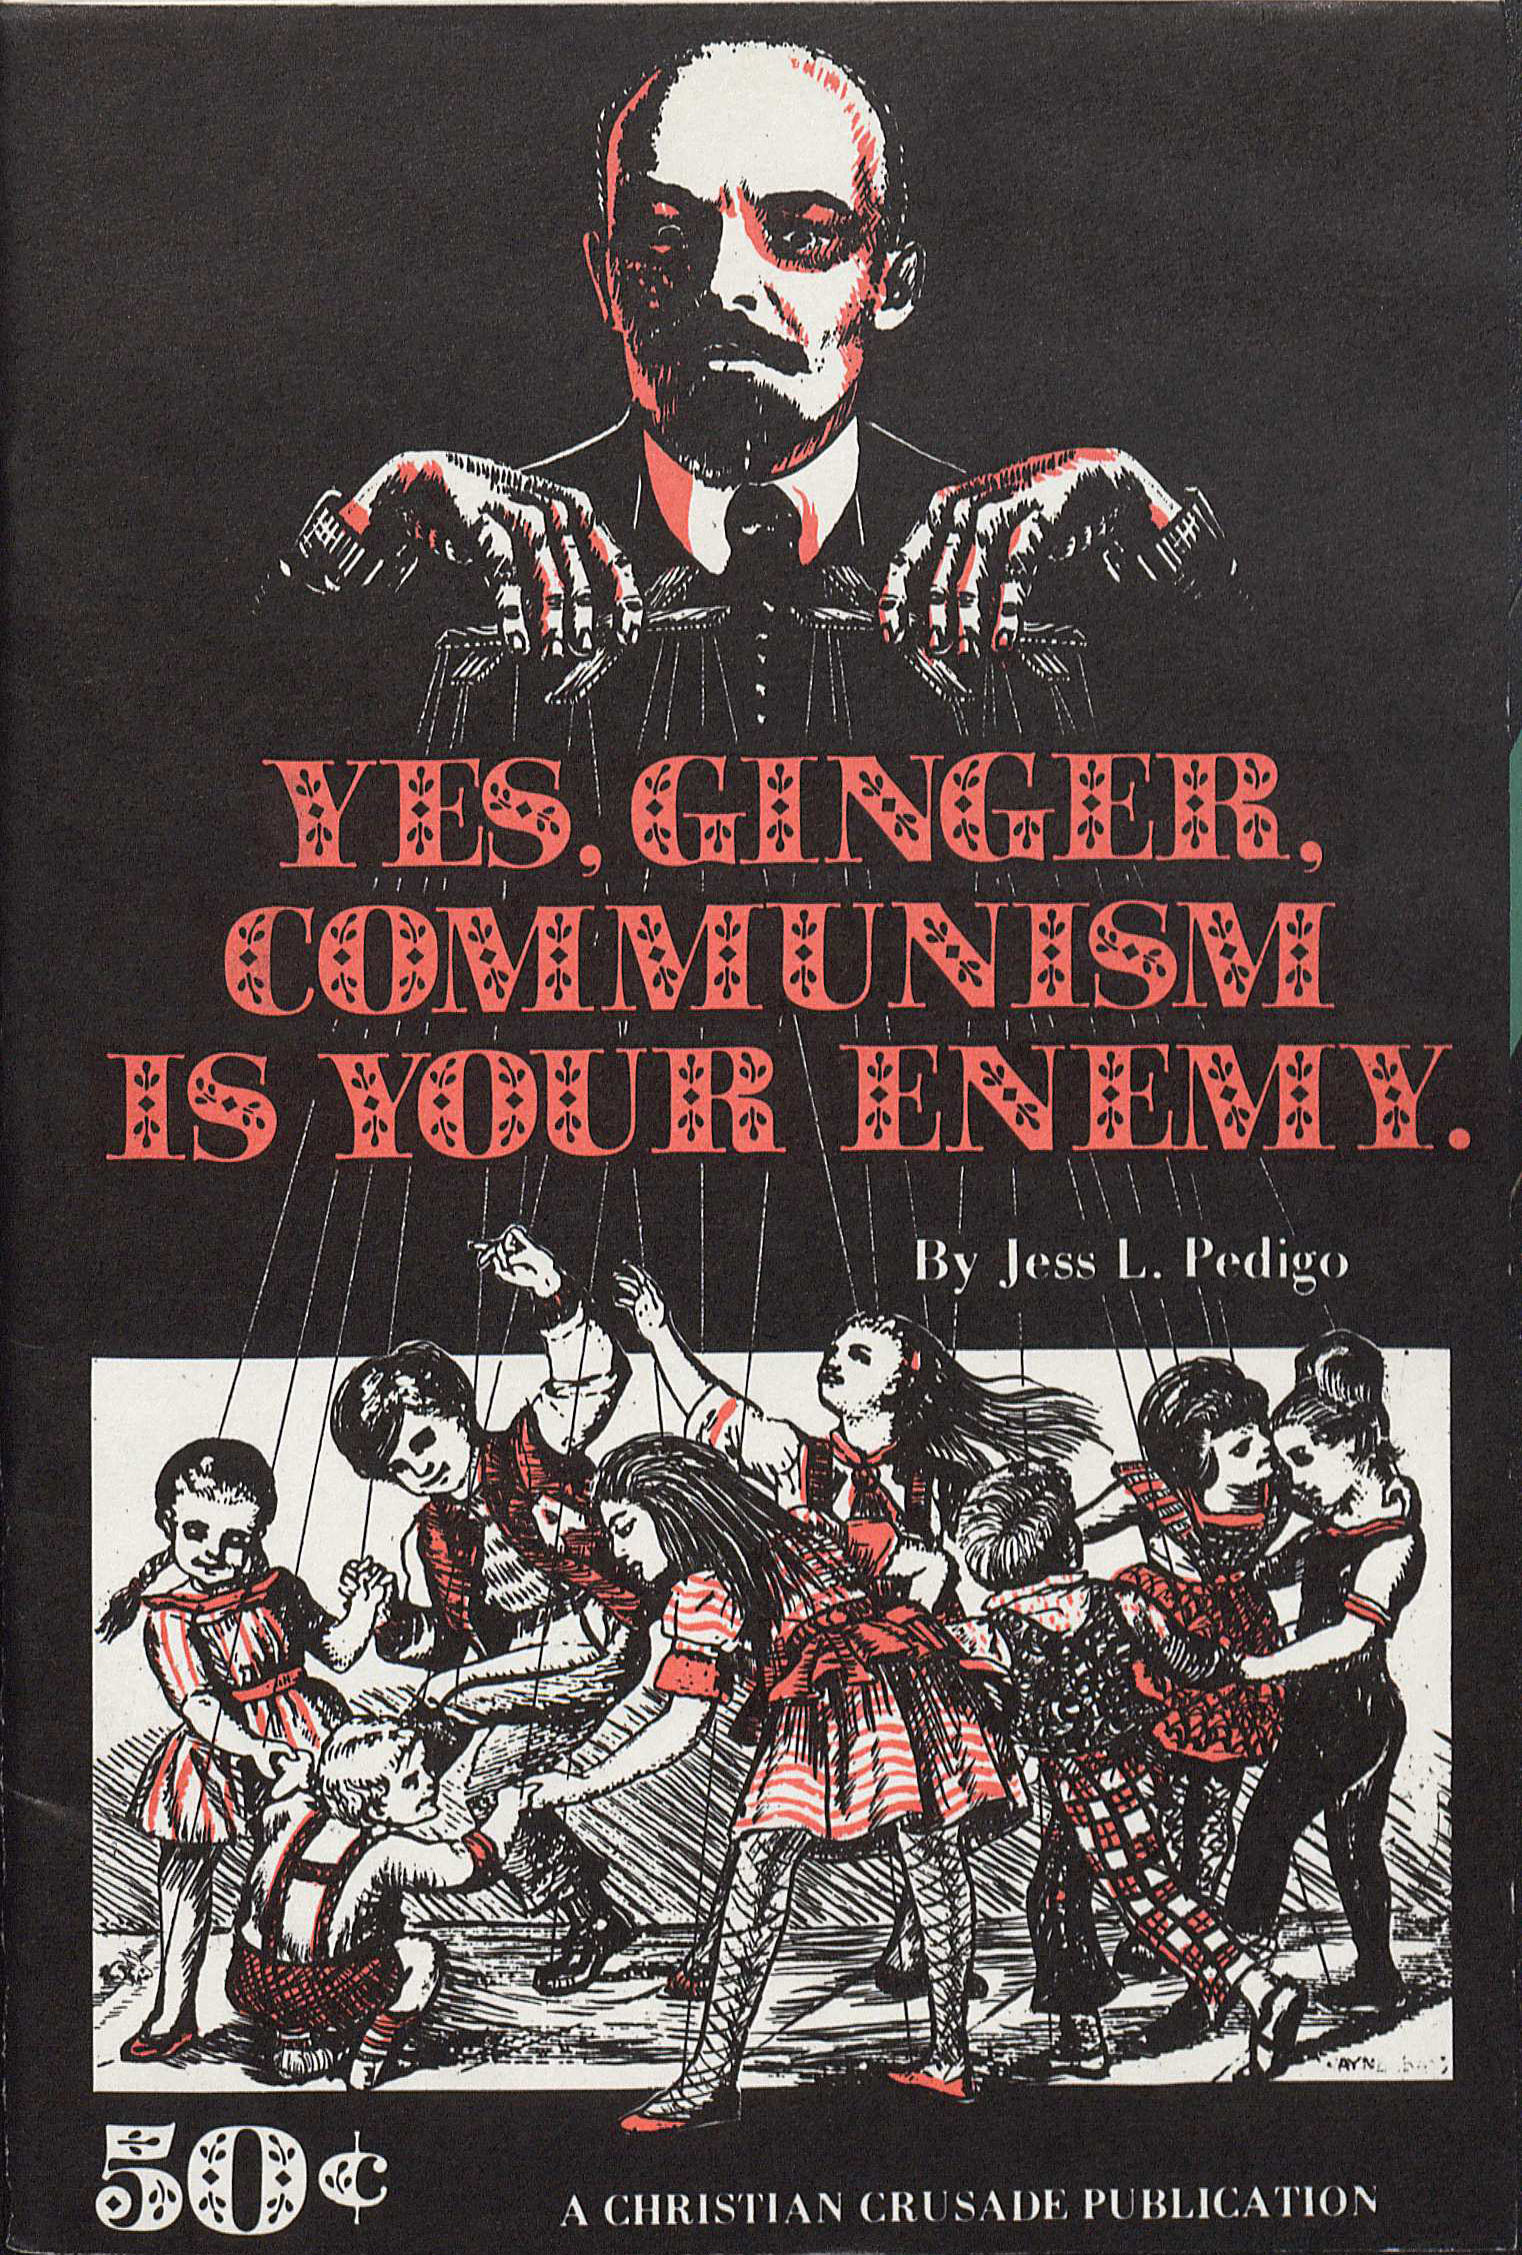 Pedigo, Jess L. Yes, Ginger. Communism Is Your Enemy. Tulsa: Christian Crusade Publications, 1970.  This booklet was published by the Christian Crusade publication company in 1970. During the Cold War many organizations in the United States, including Christian Crusades, published Anti-Communist literature. This specific booklet is a story directed at children informing them of the supposed evils of communism and as per the title explains why communism is their enemy. This artifact is a prime example of religious, anti-communist propaganda which was prevalent during the cold war era.